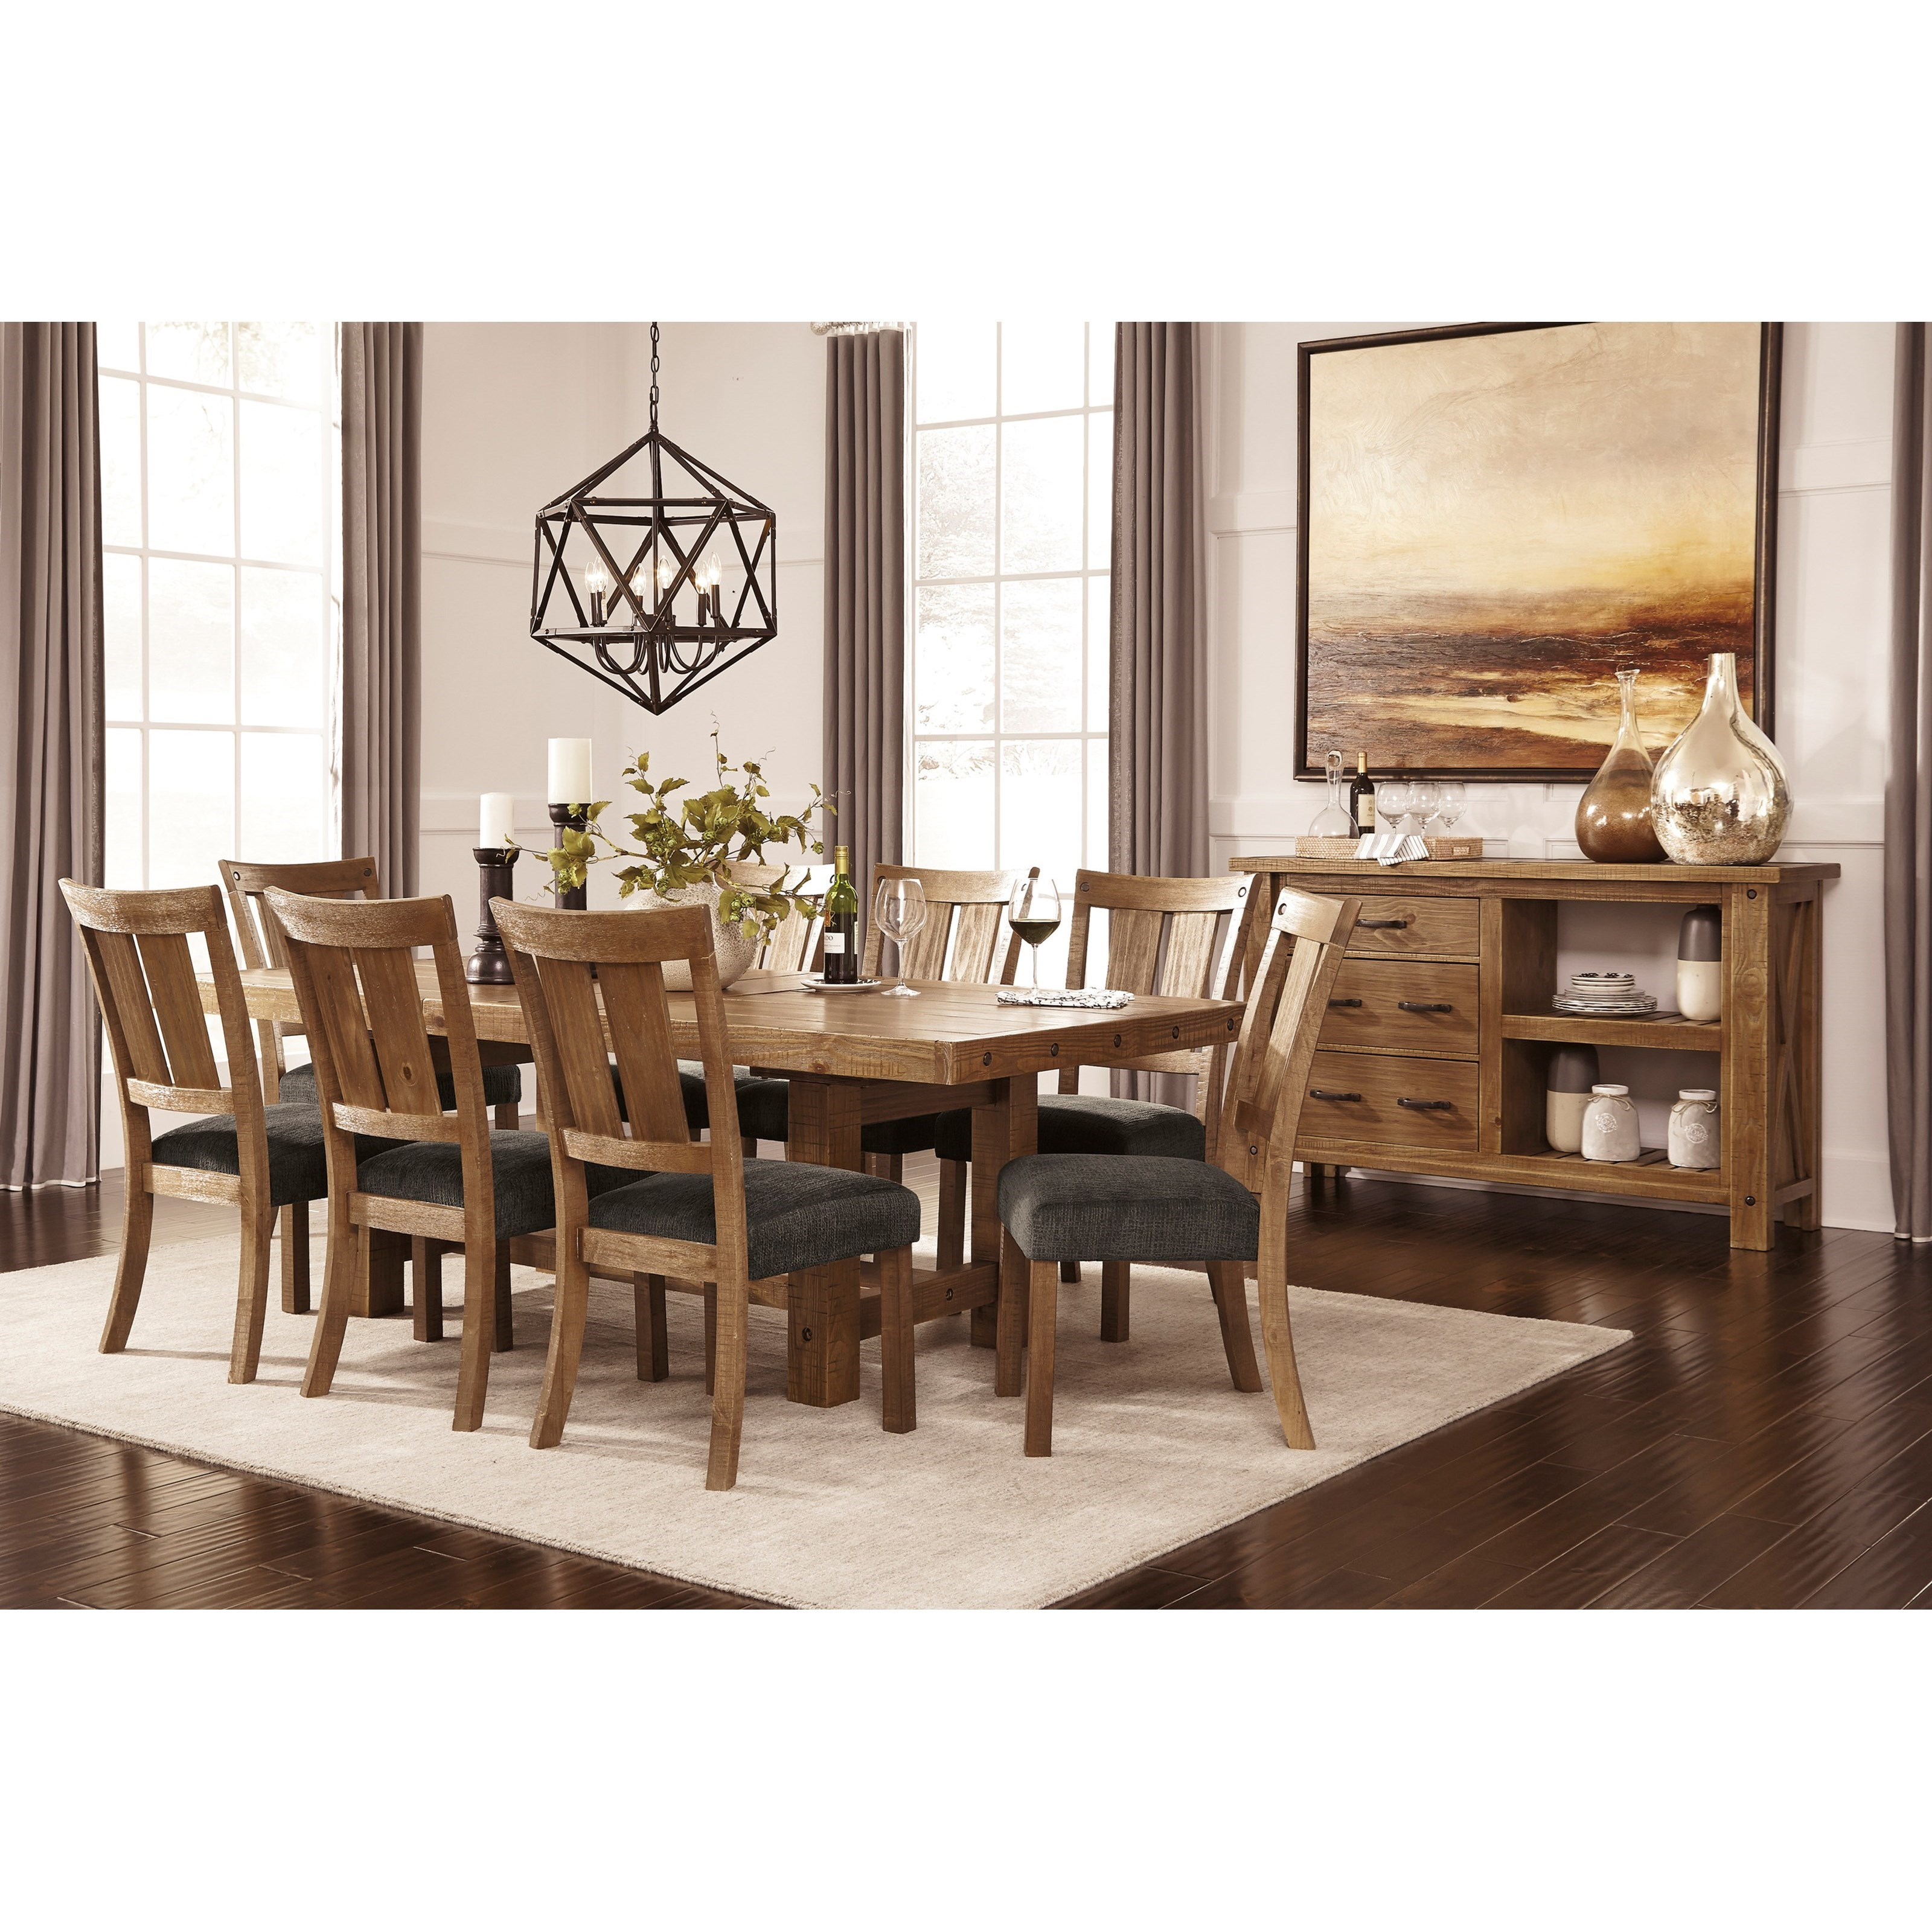 Casual dining room group by signature design by ashley for Casual dining room decor